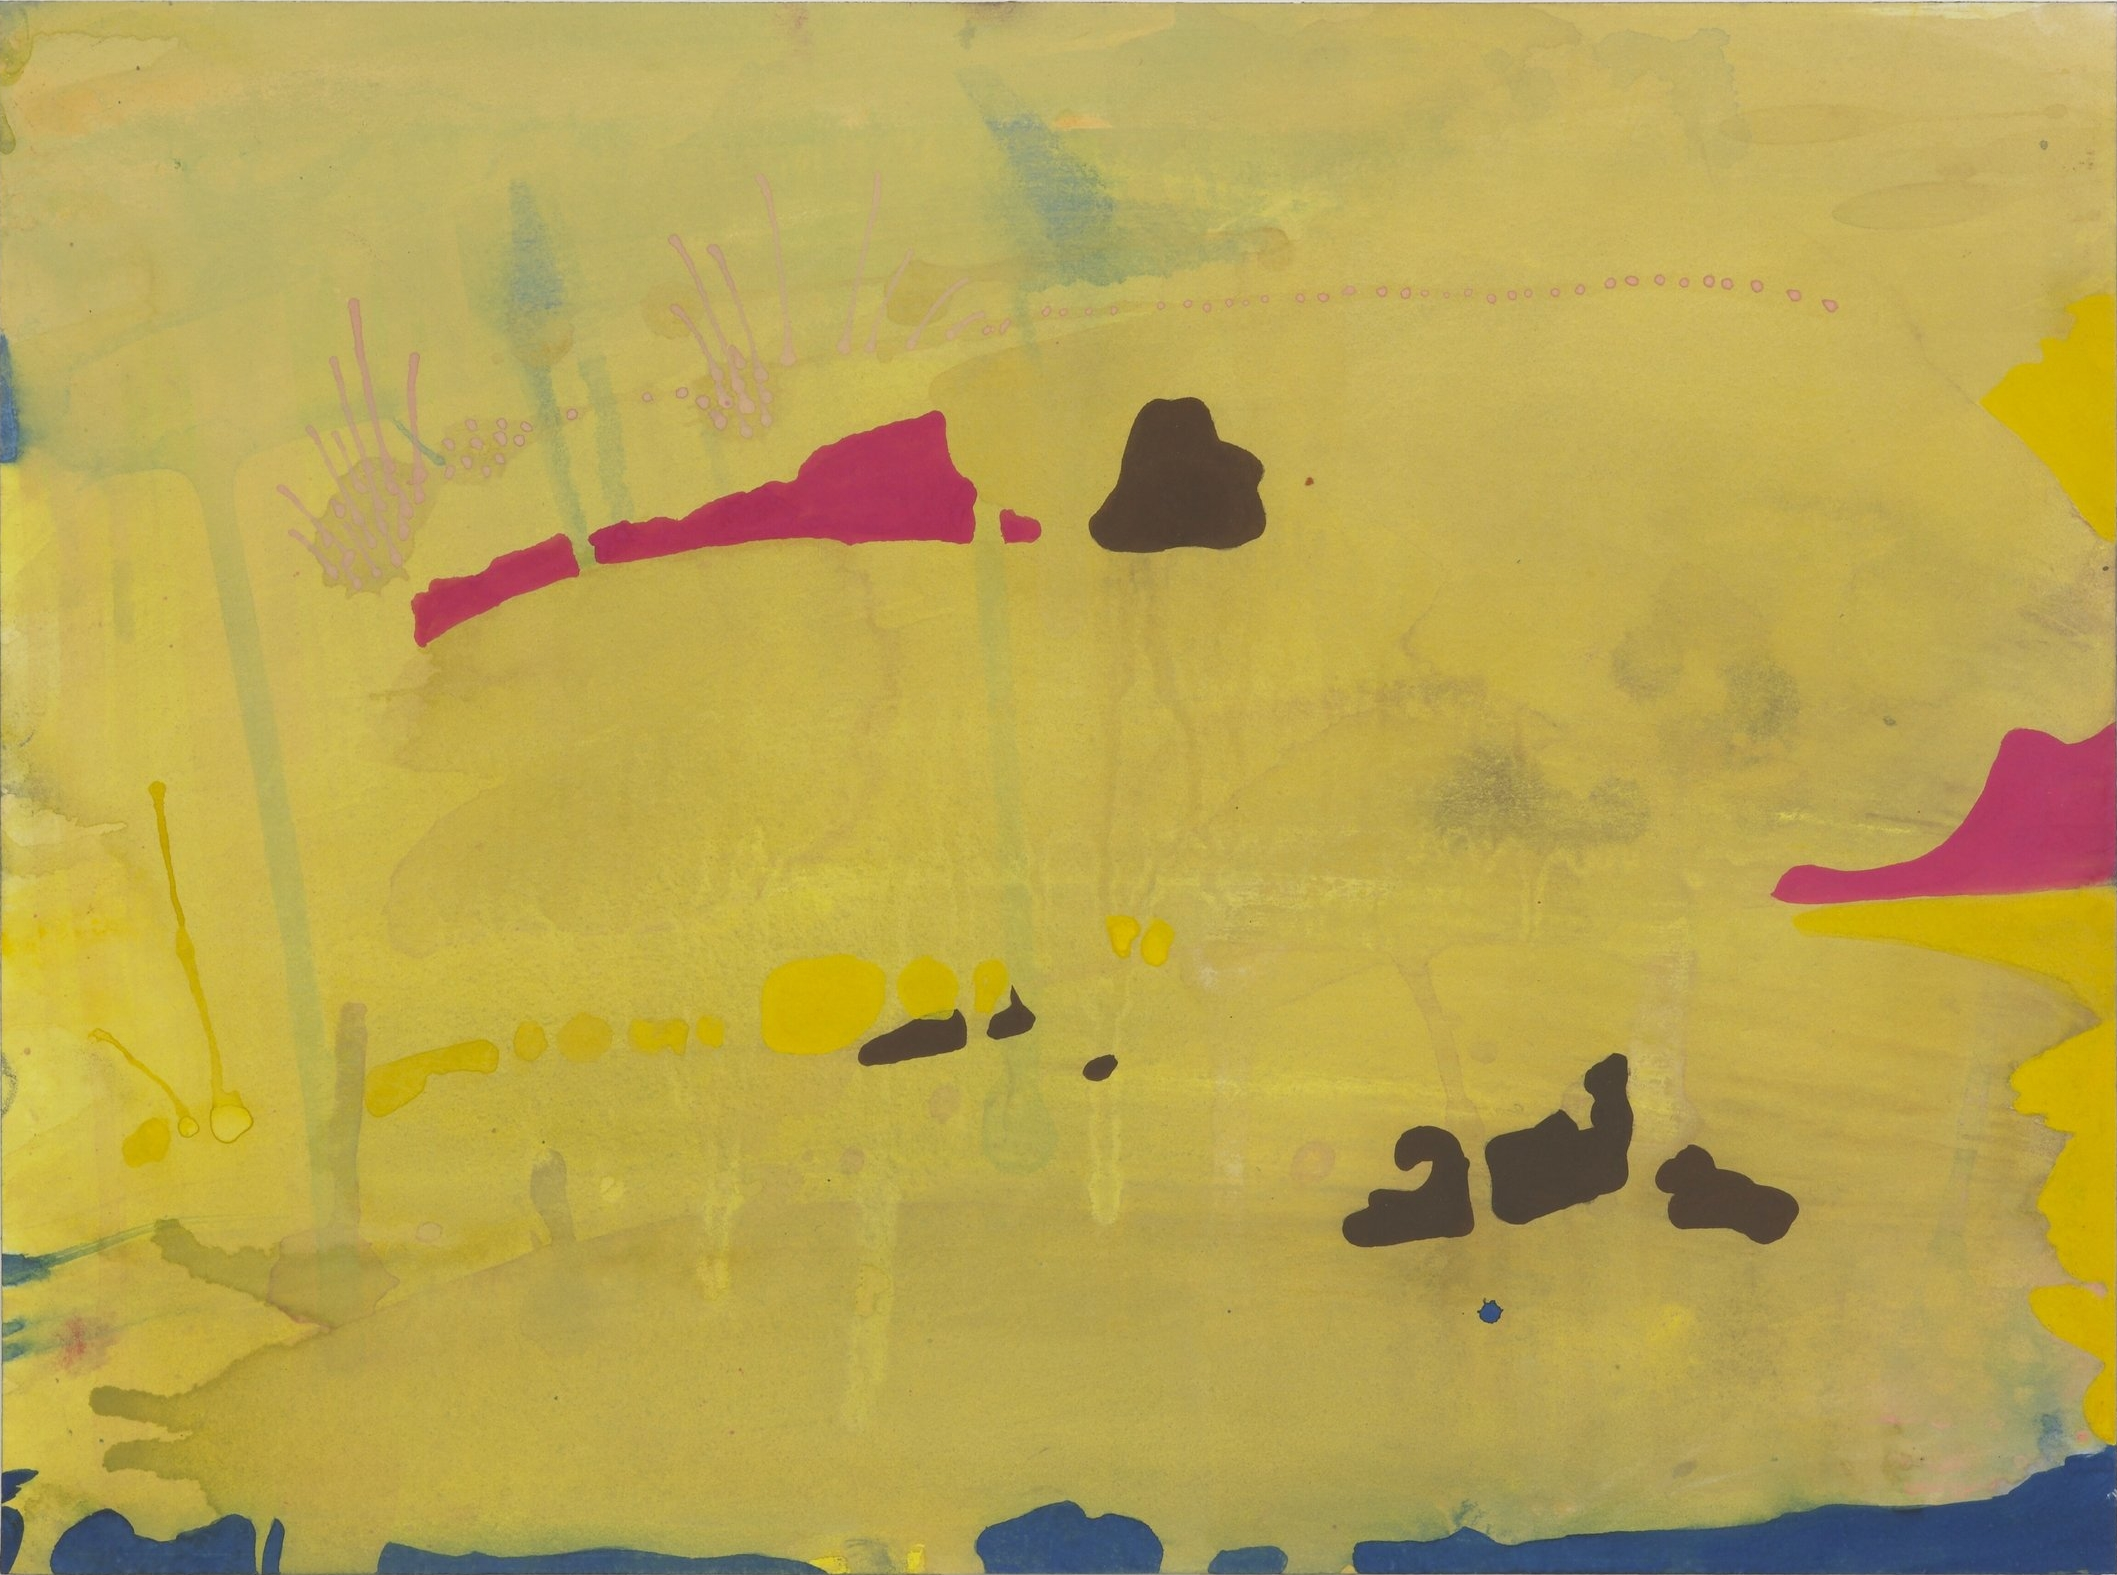 Untitled 3, 1996  Gouache on paper  9 x 12 inches